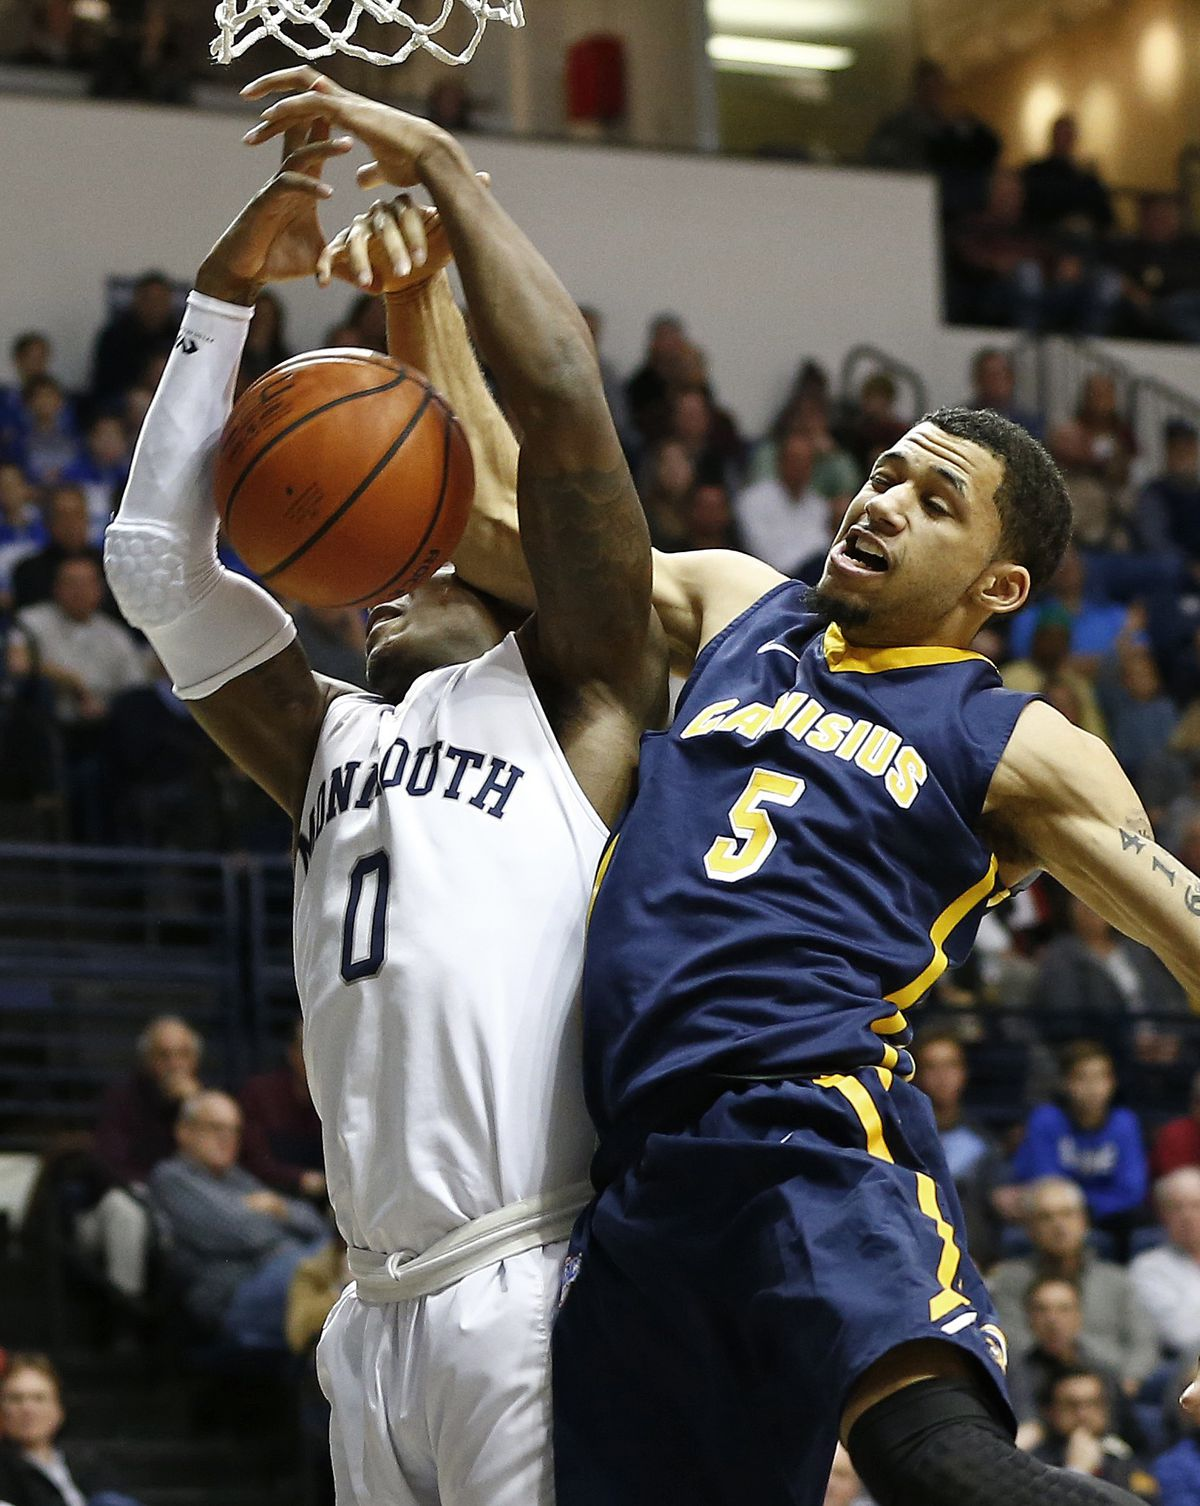 Canisius v Monmouth